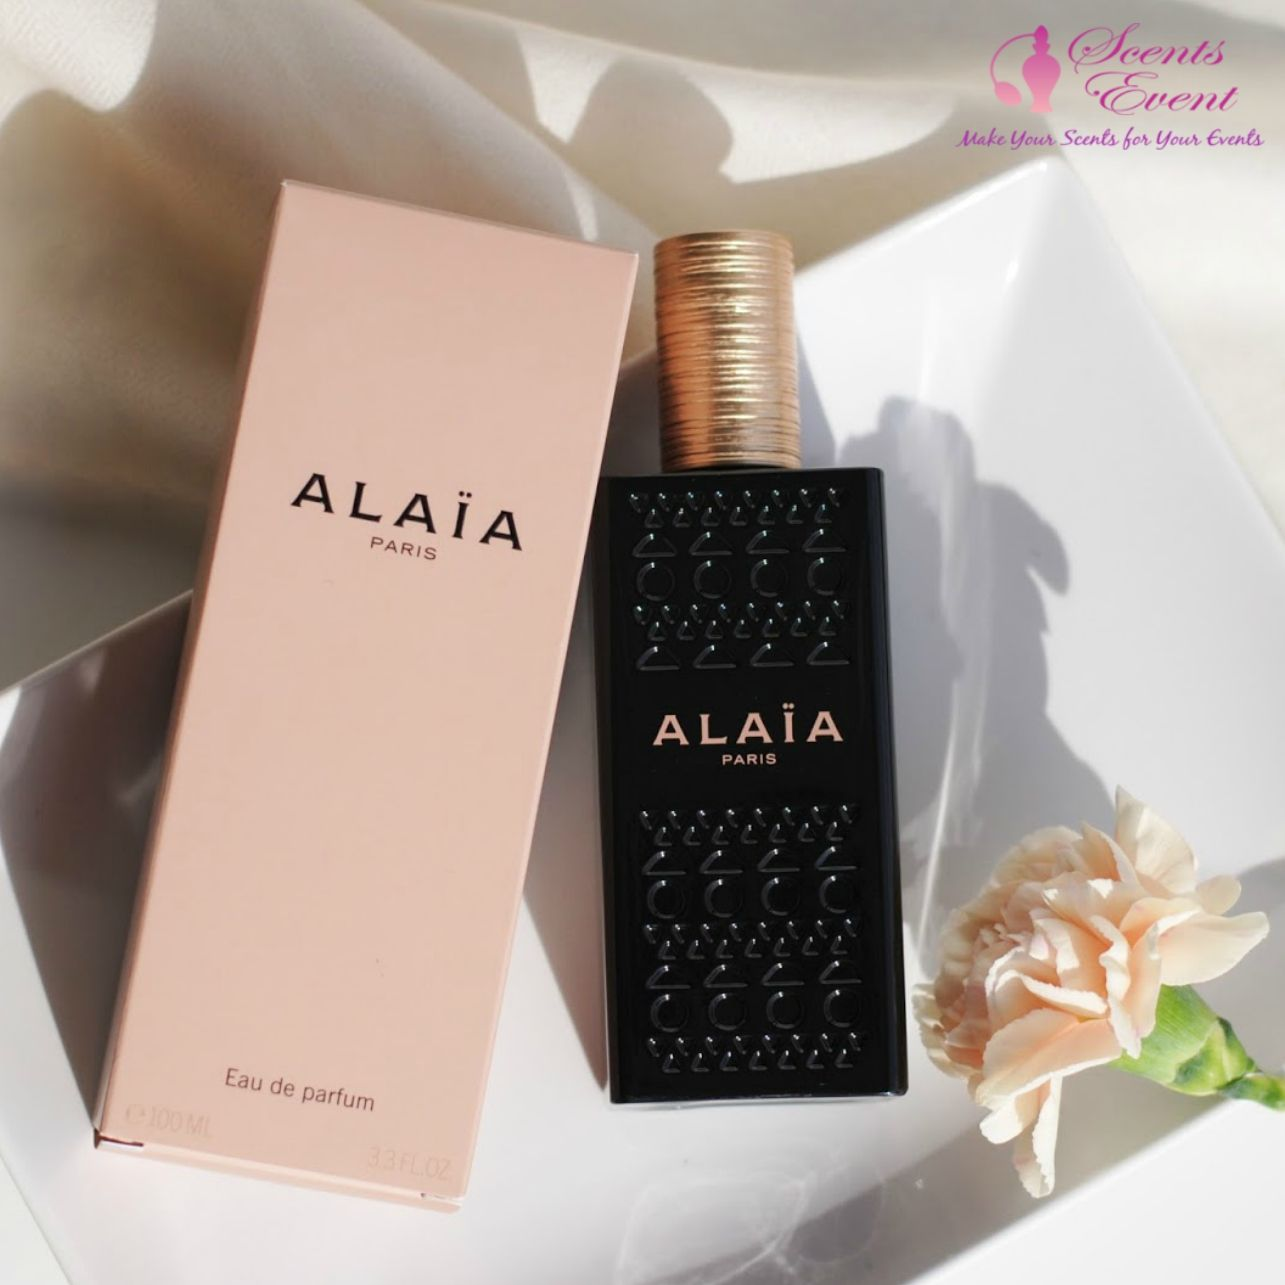 Fashion Designer Azzedine Alaia Enters The World Of Perfumes Under The License Of Beaute Prestige International And Launches Niche Perfume Alaia Eau De Parfum